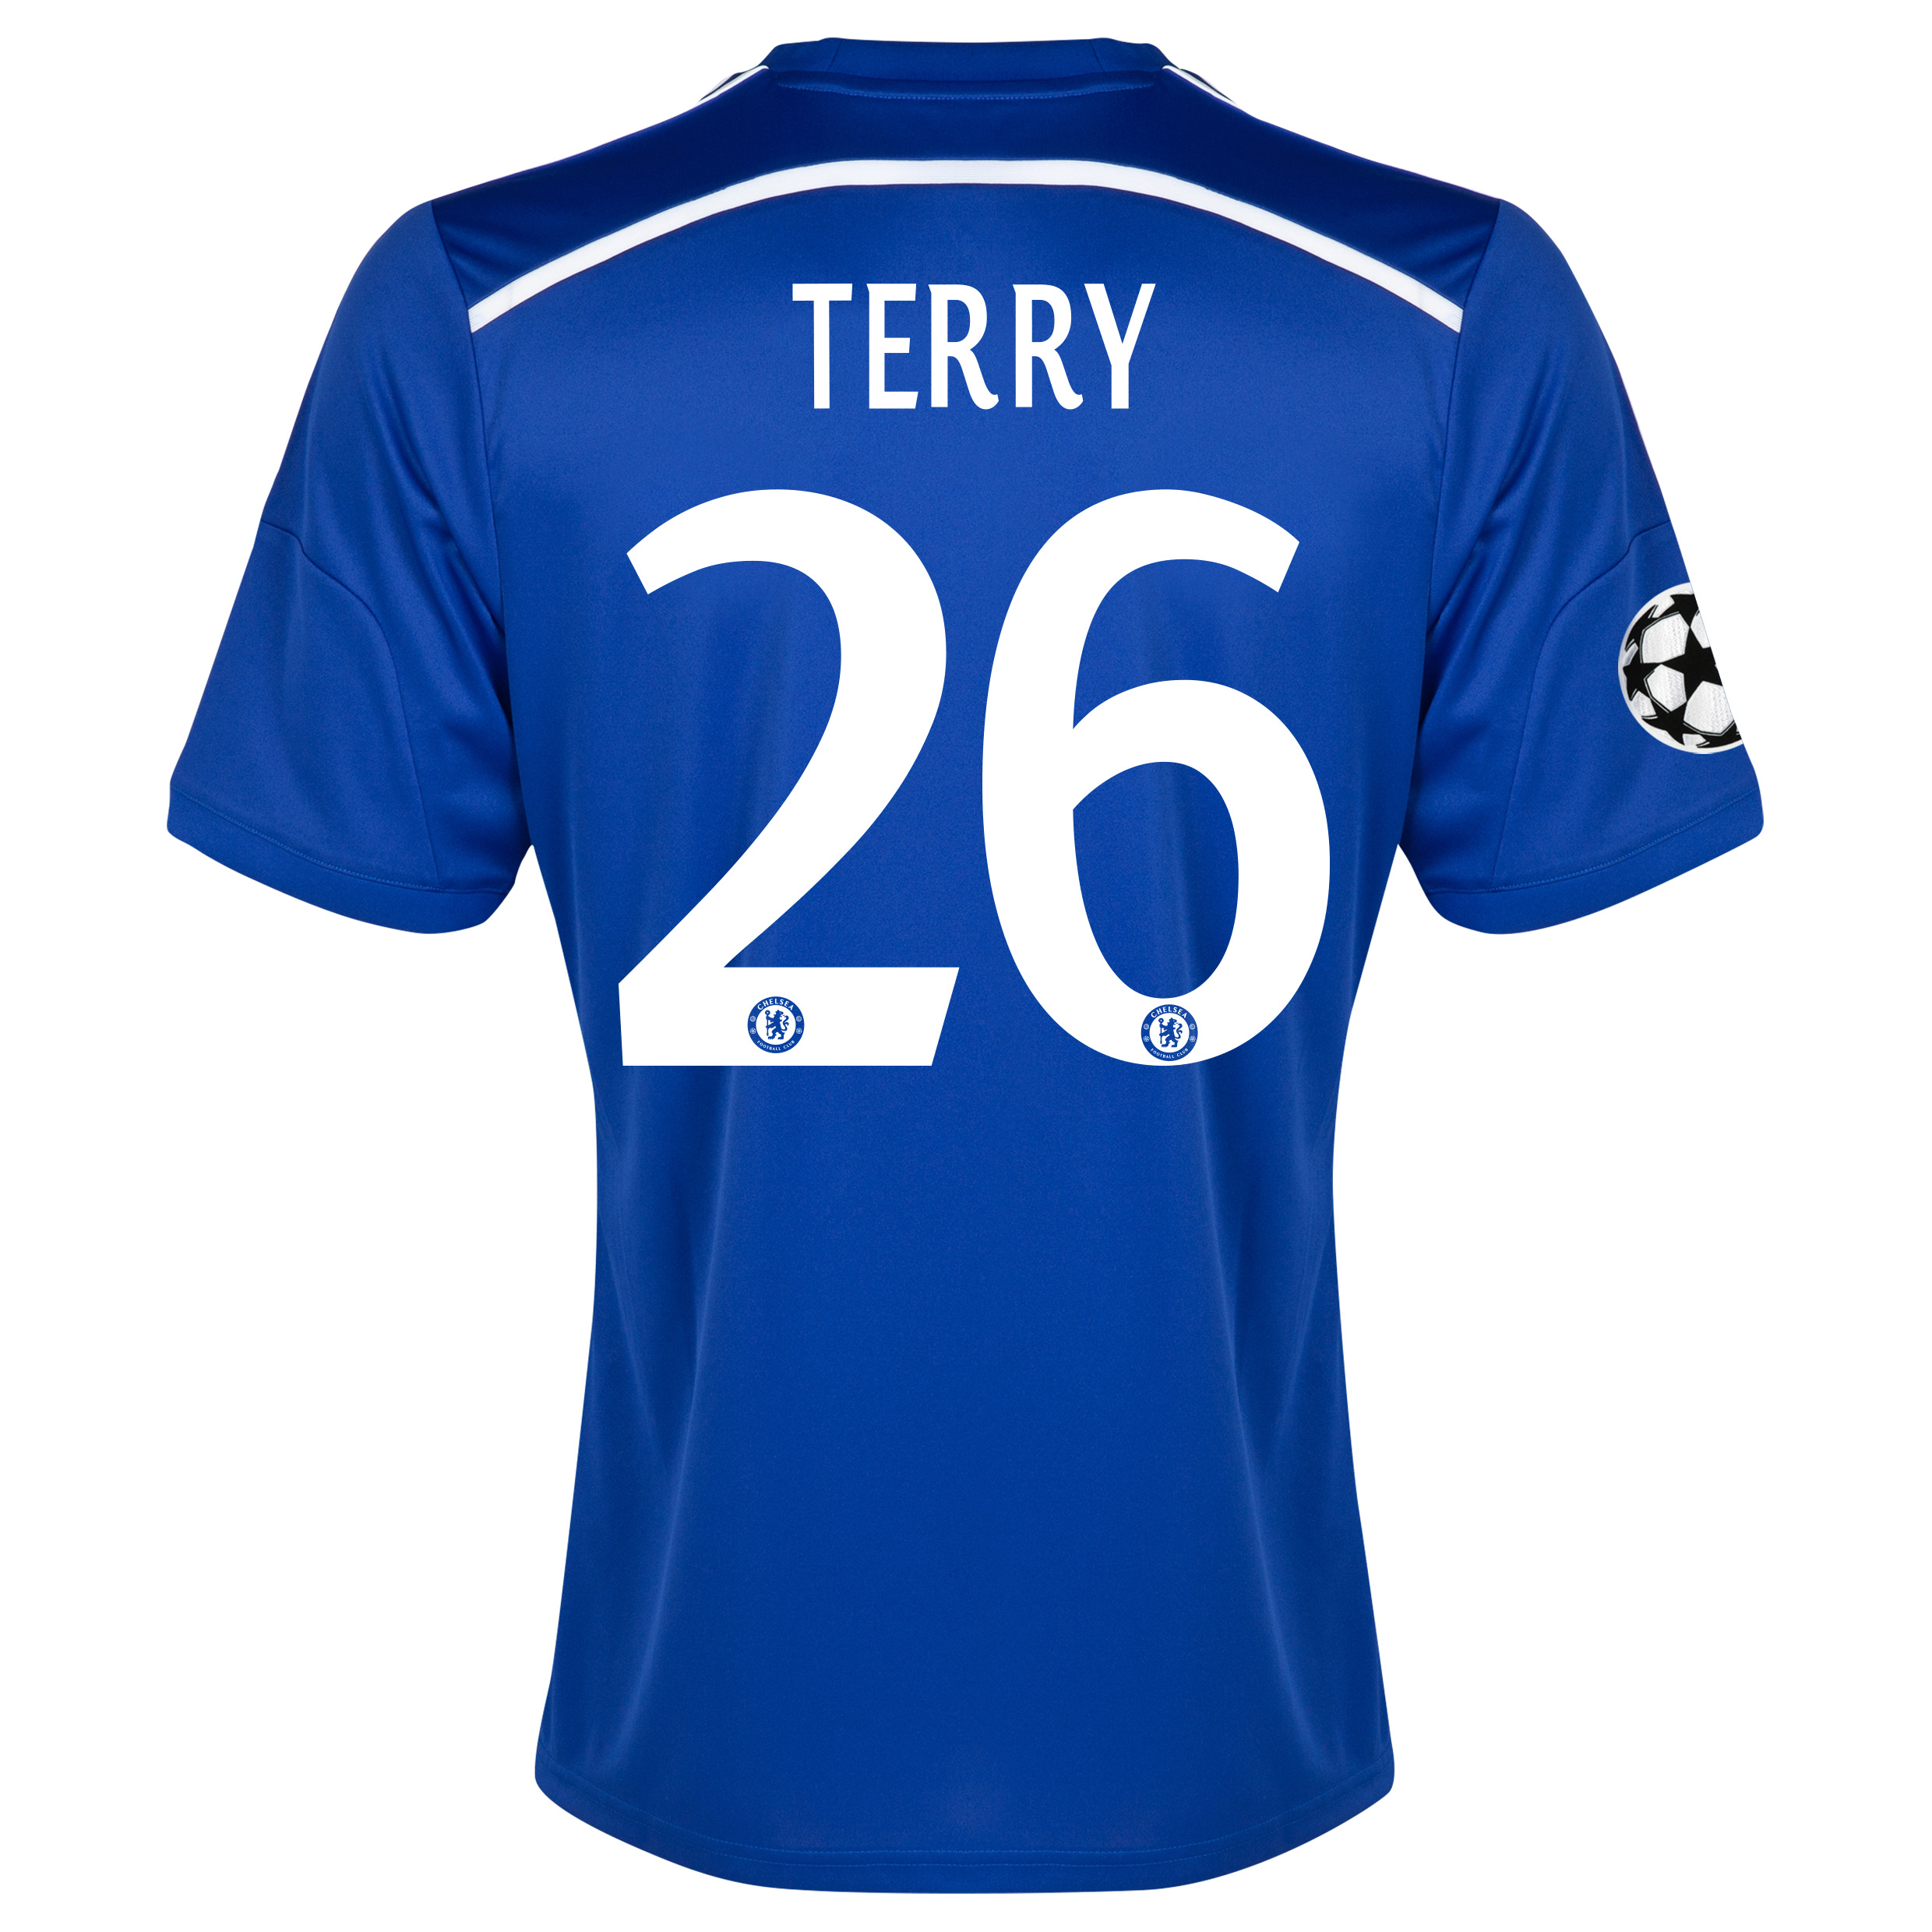 Chelsea UEFA Champions League Home Shirt 2014/15 - Kids Blue with Terry 26 printing